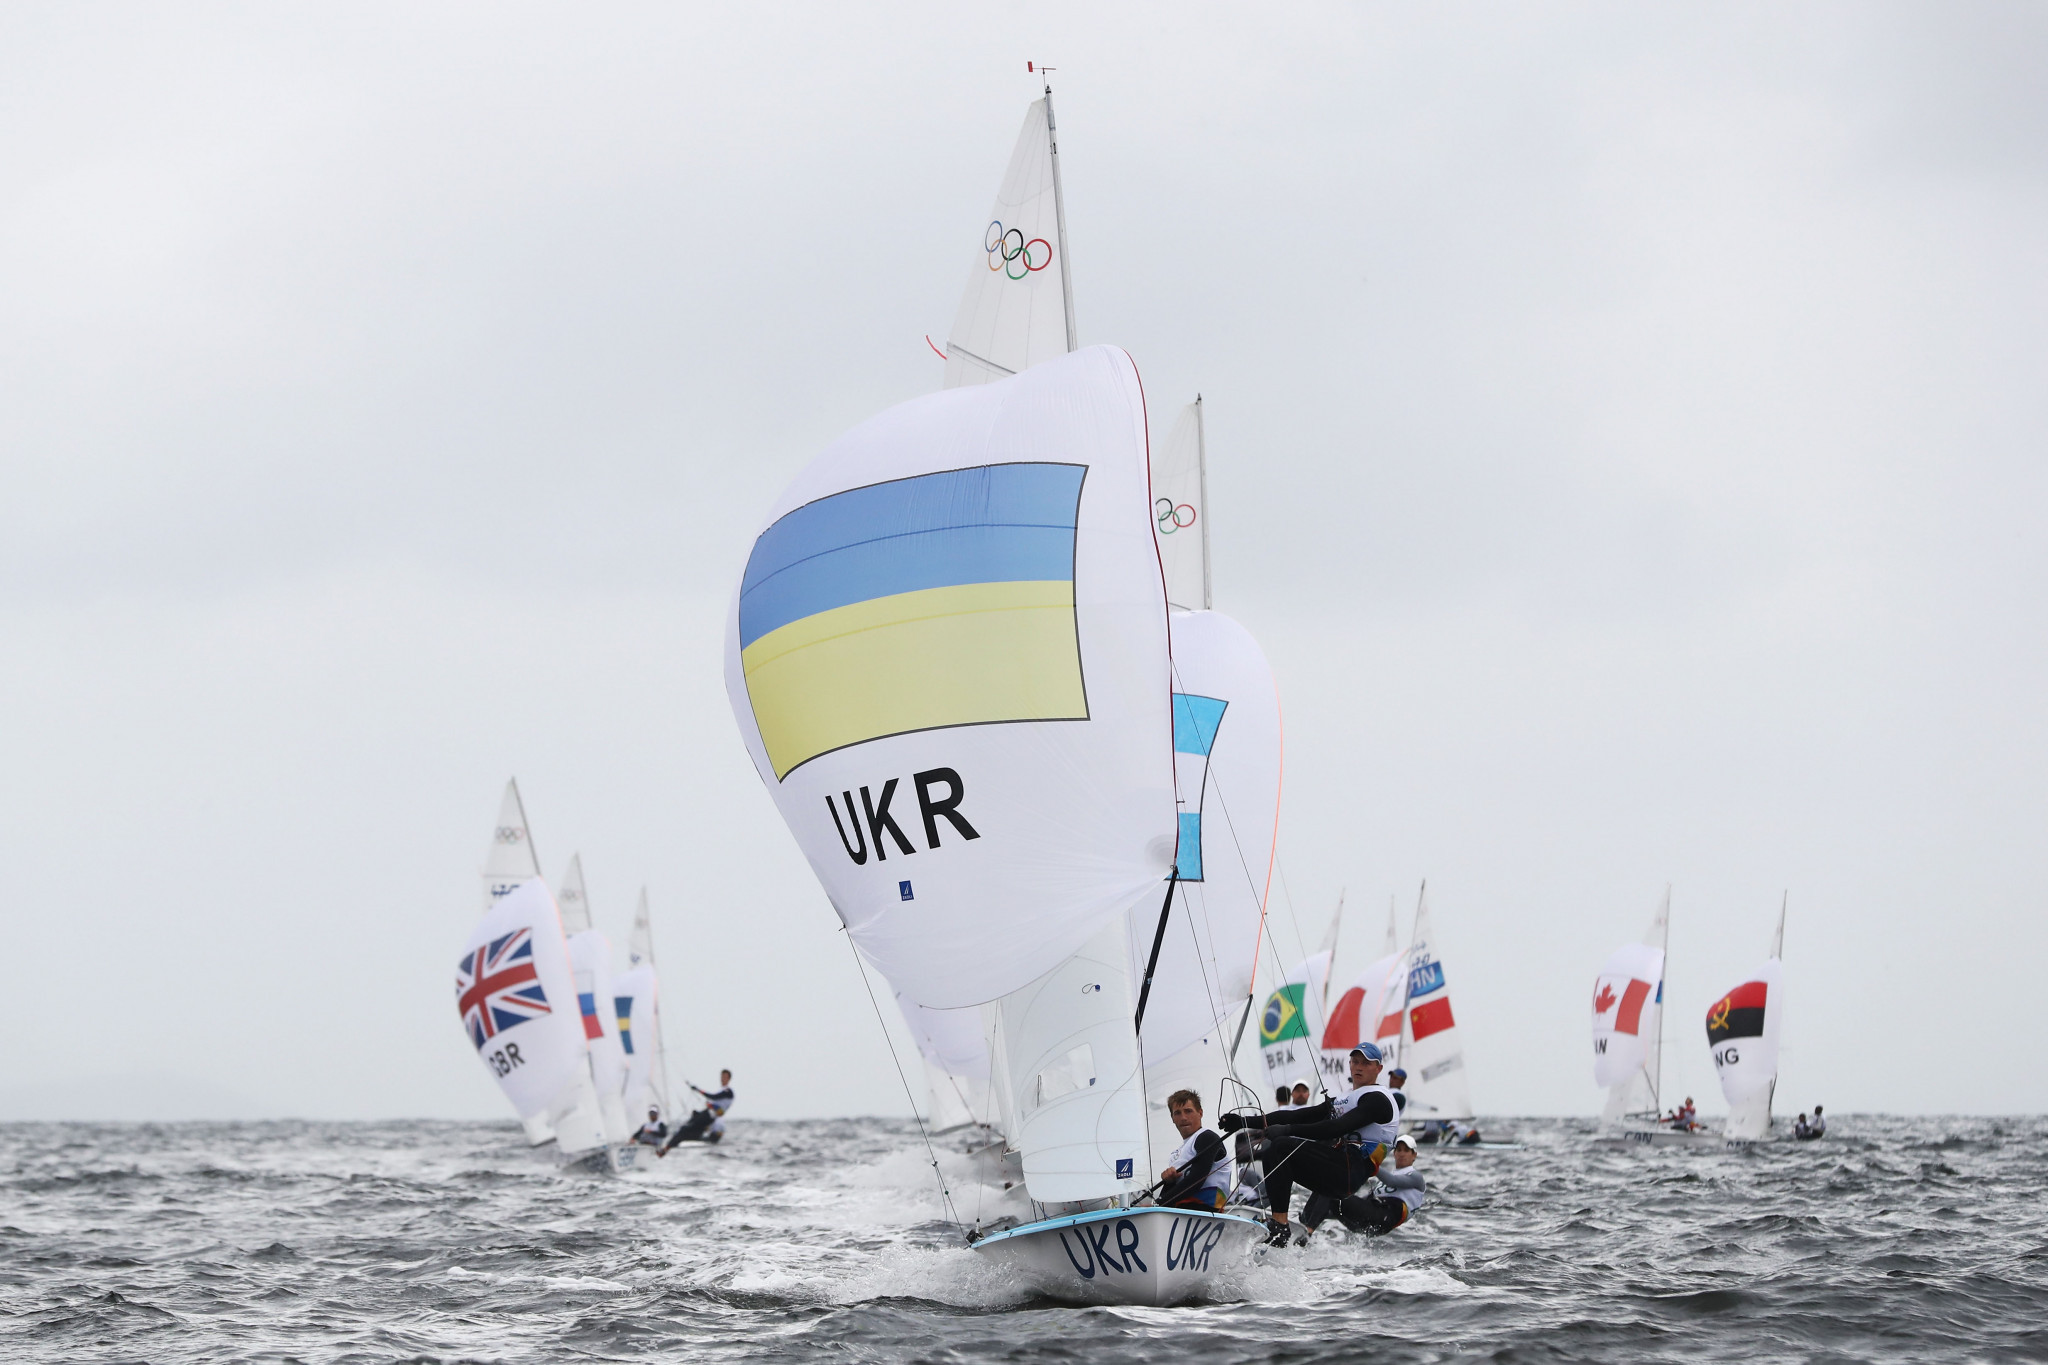 Ukraine ask World Sailing to ban Russia amid Crimea tension